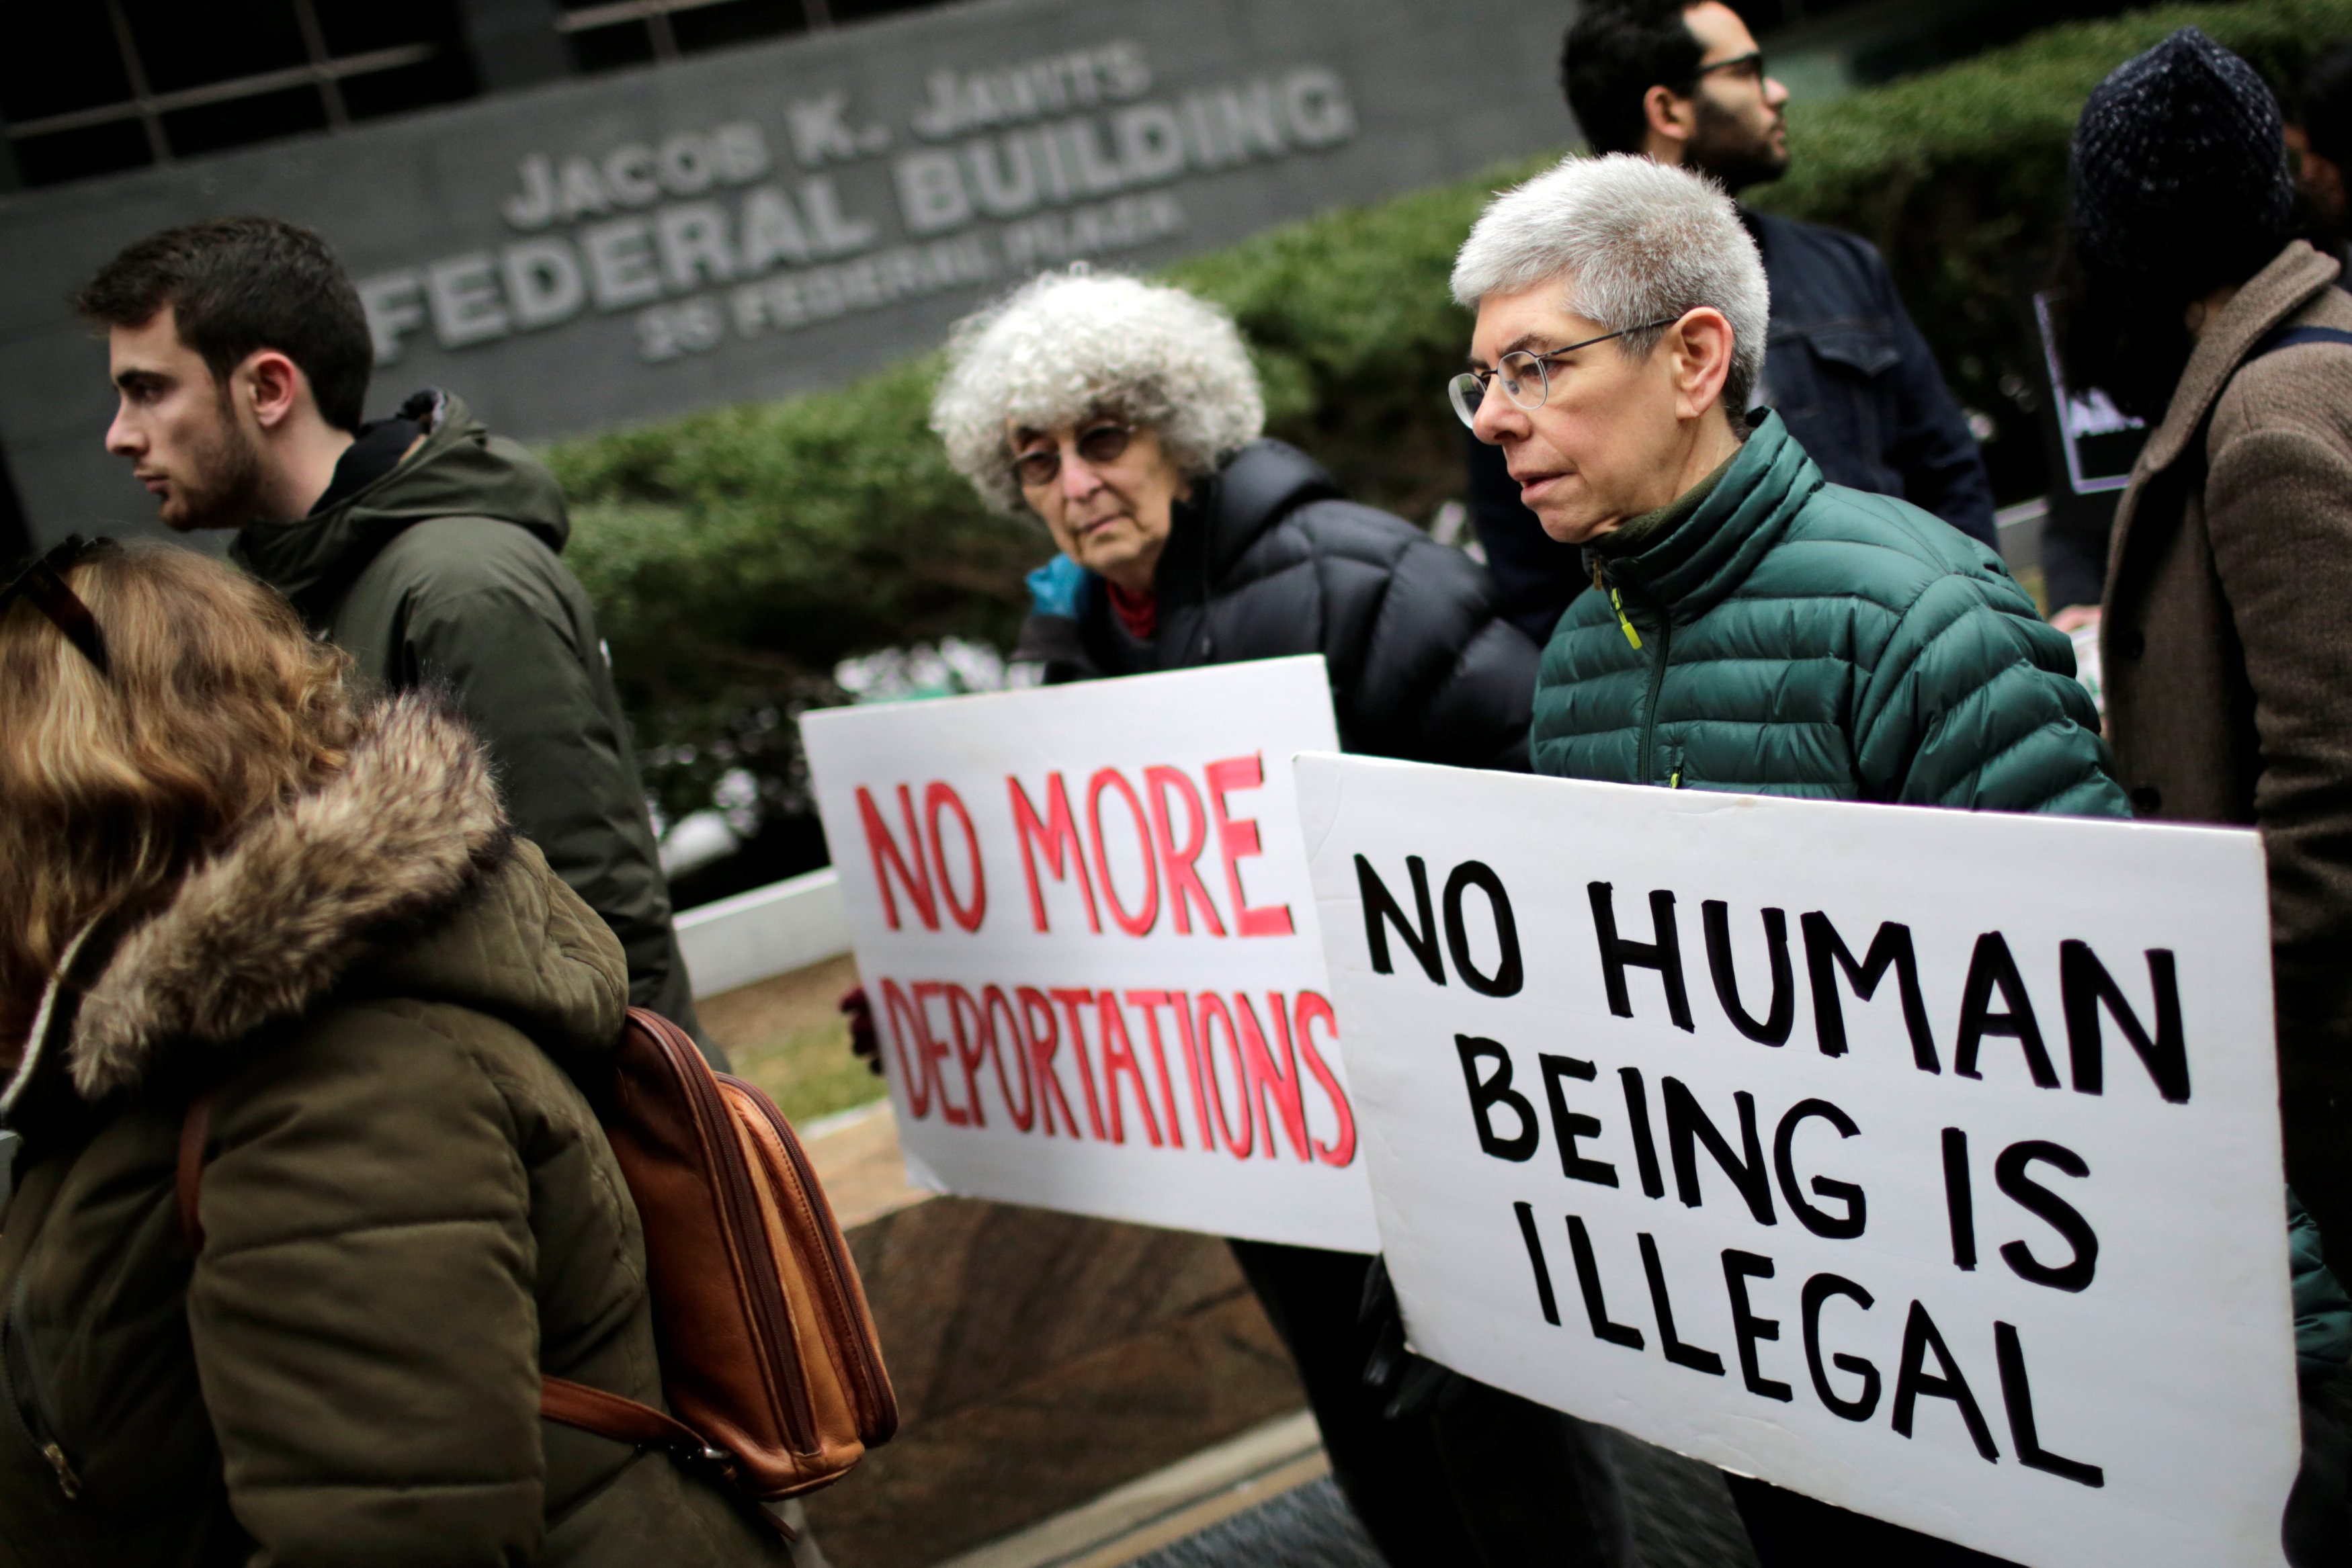 Activists demonstrate against deportation during a protest outside the Jacob Javits Federal Building in Manhattan in New York City, January 11, 2018. — Reuters pic